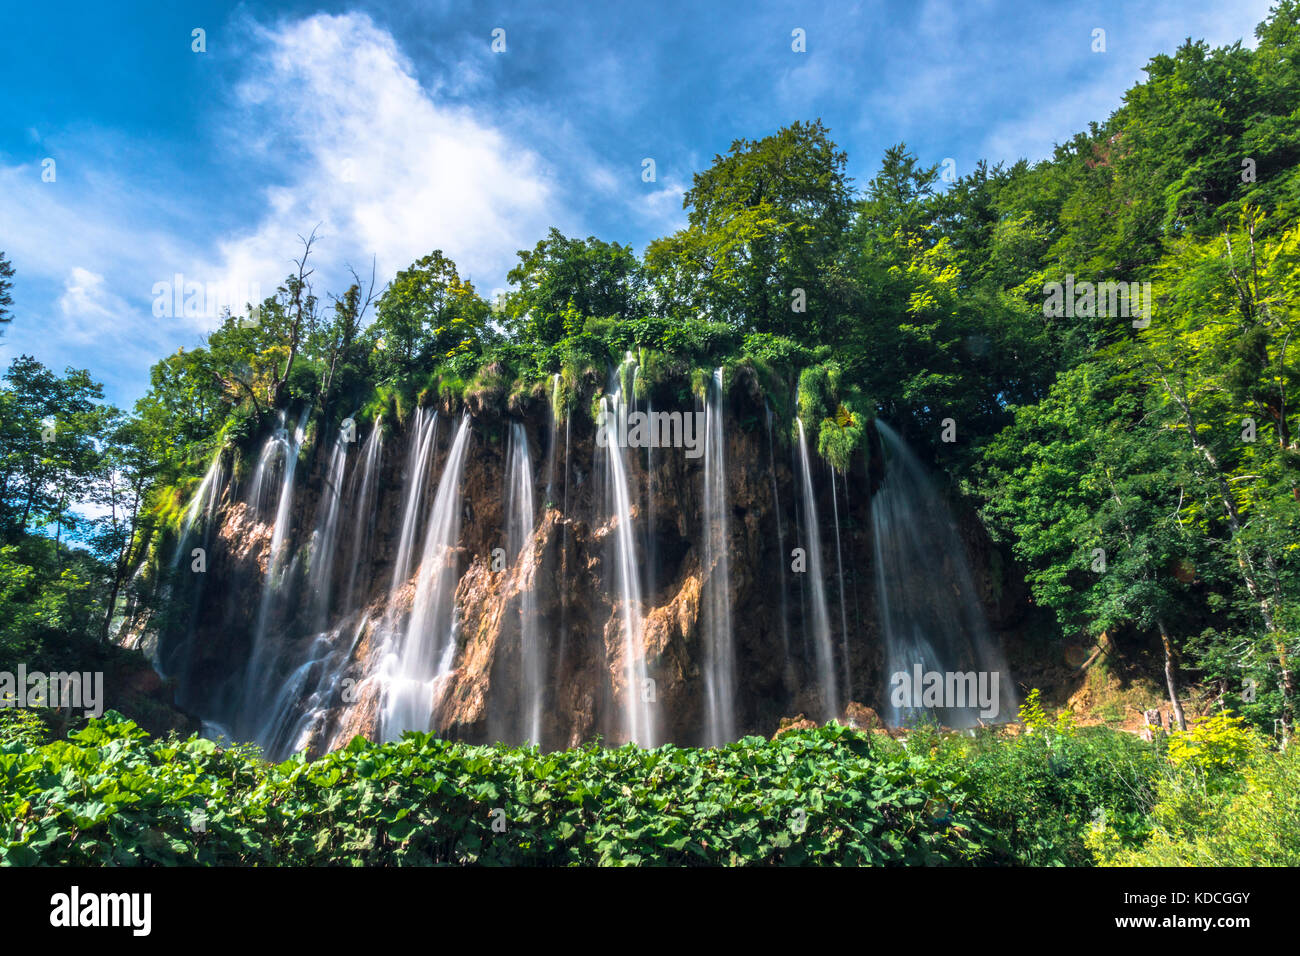 Plitvice lakes, National park, Croatia - Stock Image